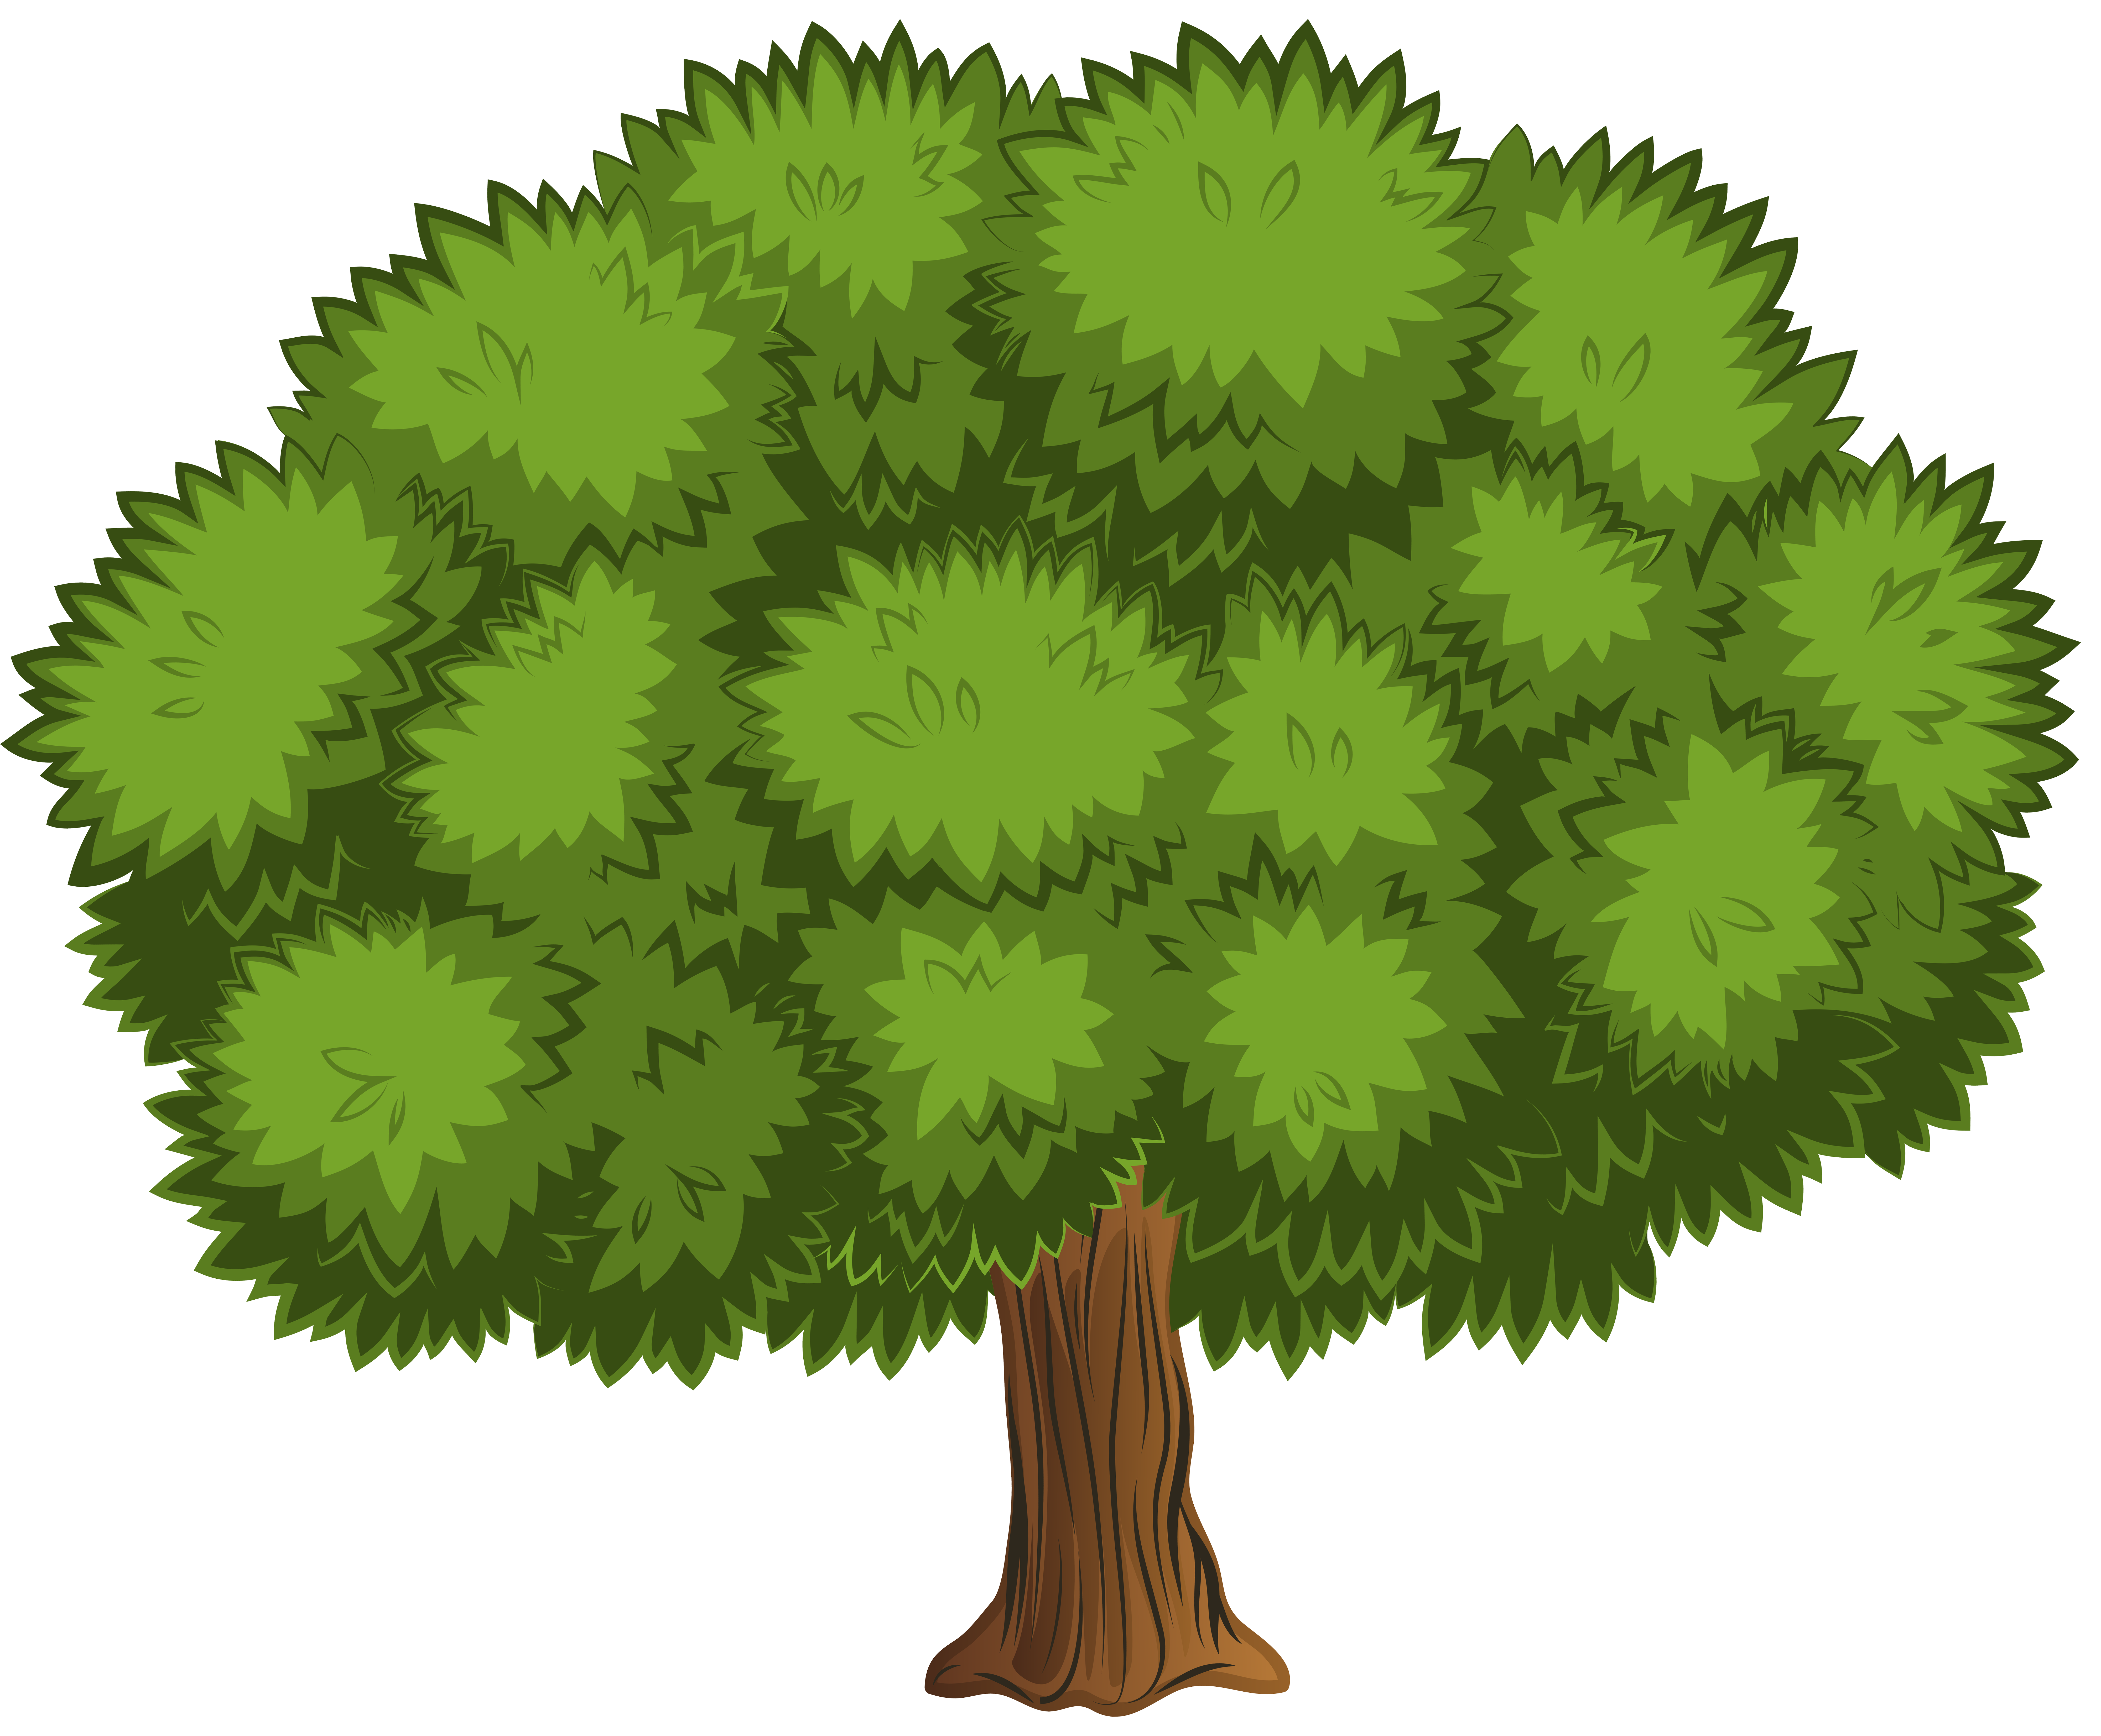 Hq Tree Clipart Png Transparent Tree Clipart Png Images Pluspng